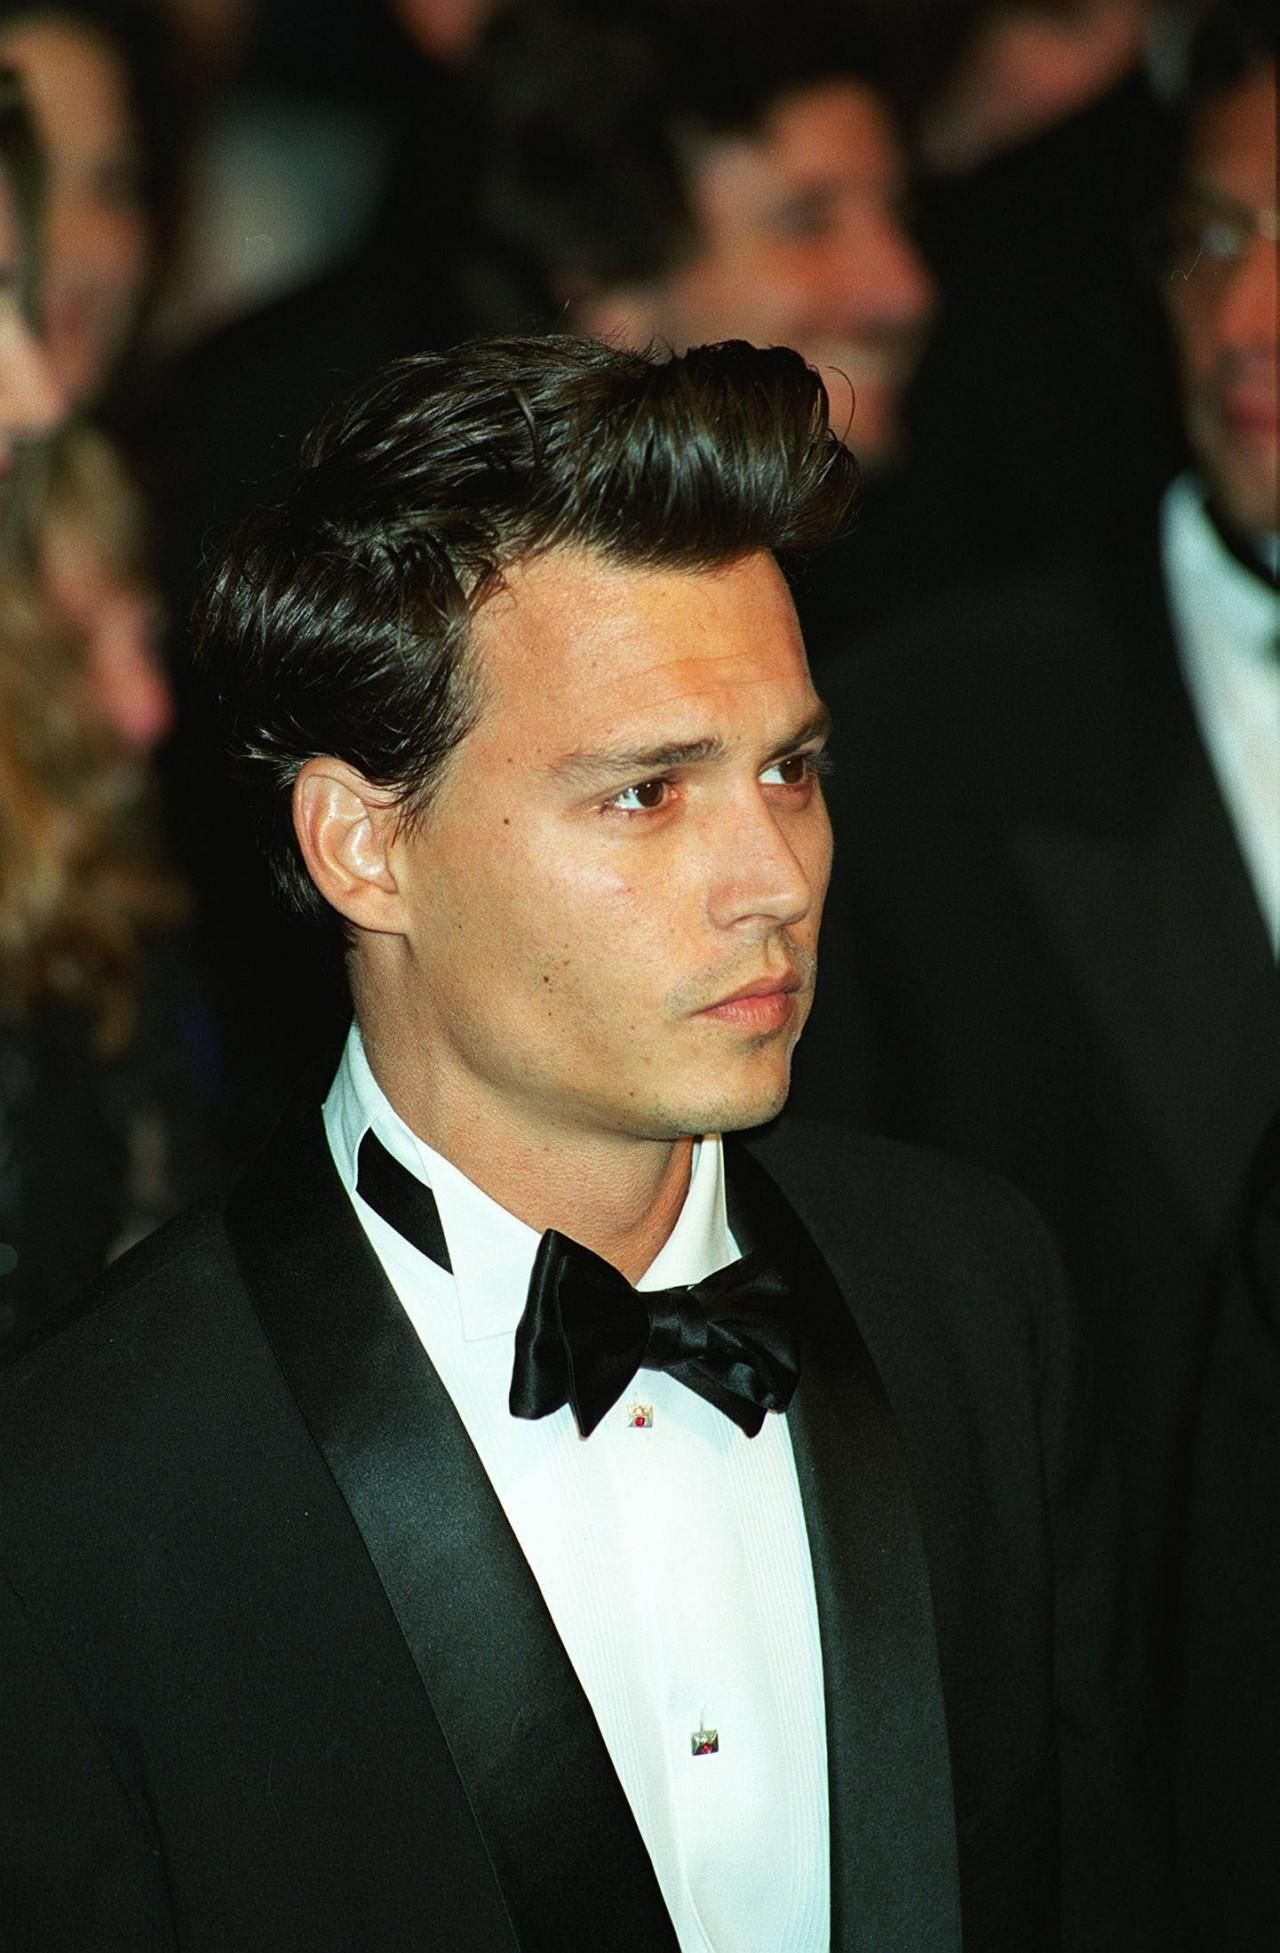 Some Might Not Like It But I Love Johnny Depp With Short Hair So Handsome Johnny Depp Johnny Depp Hairstyle Johnny